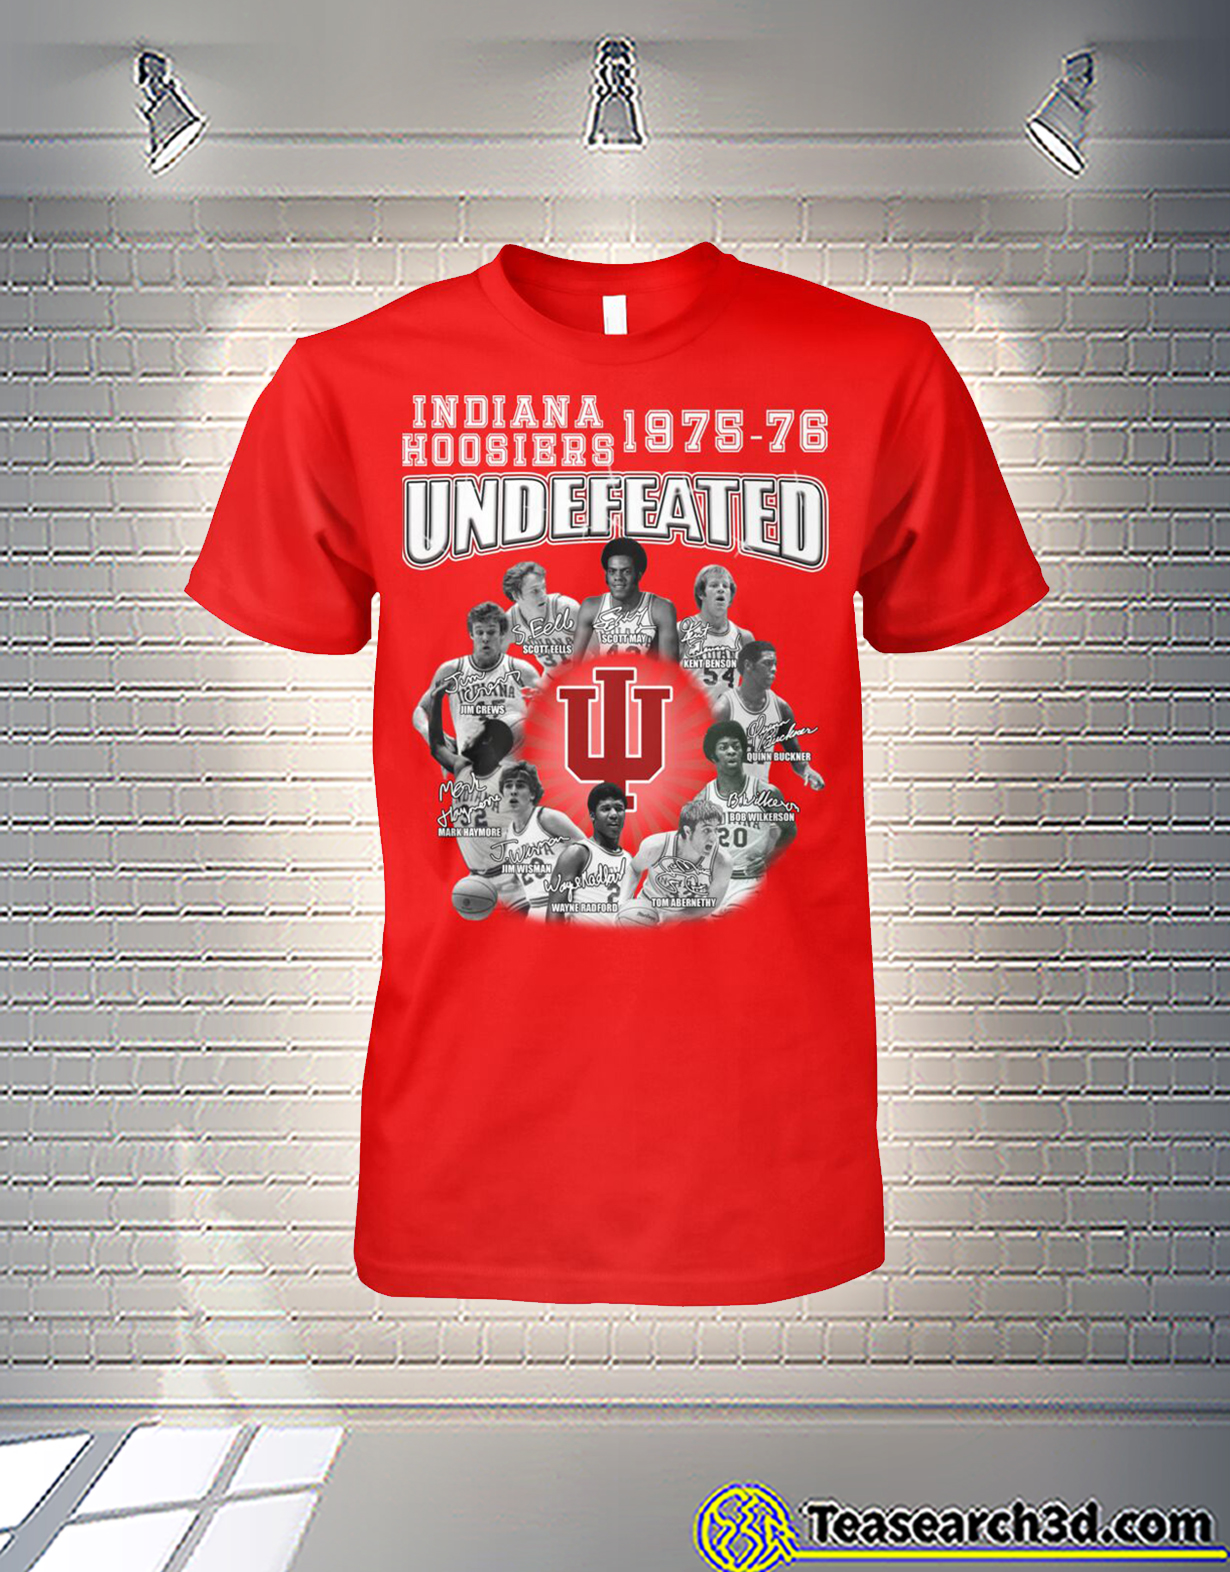 Indiana hoosiers 1975-76 undefeated players signature shirt